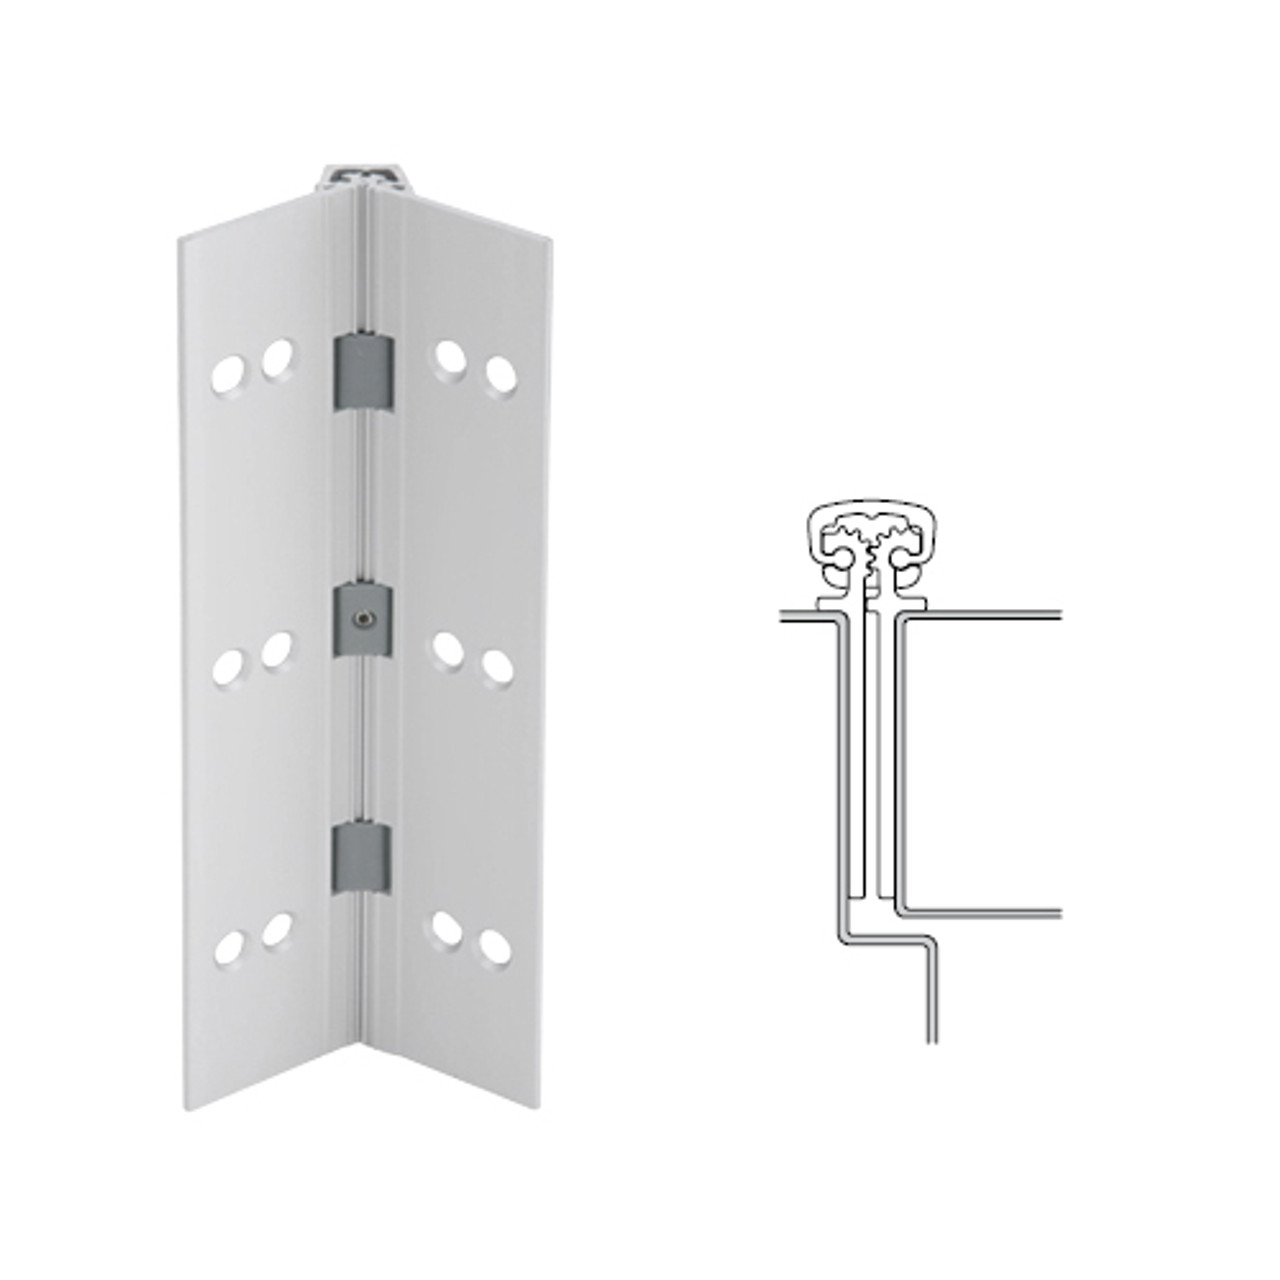 027XY-US28-83-TF IVES Full Mortise Continuous Geared Hinges with Thread Forming Screws in Satin Aluminum